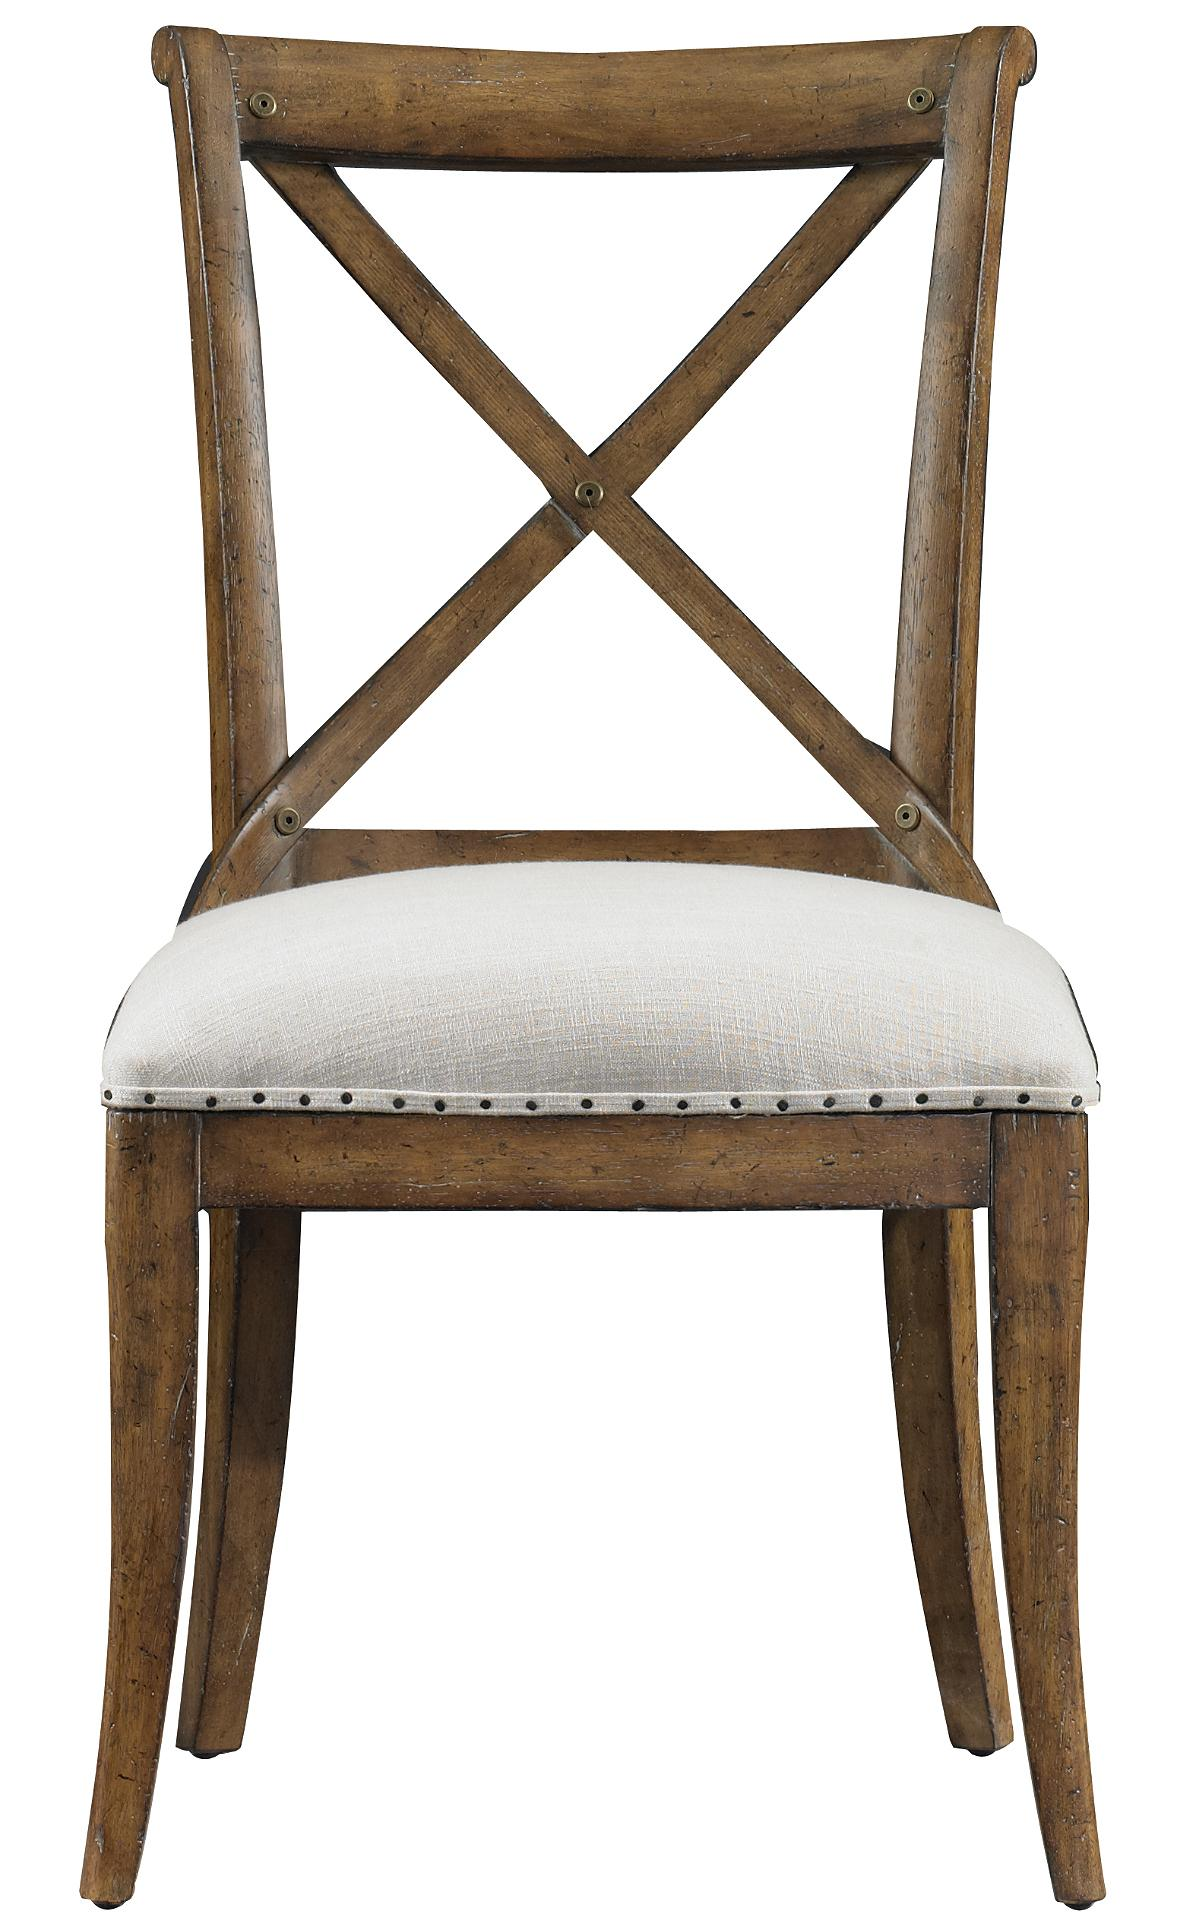 Stanley Furniture European Farmhouse Fairleigh Fields Guest Chair - Item Number: 018-61-60